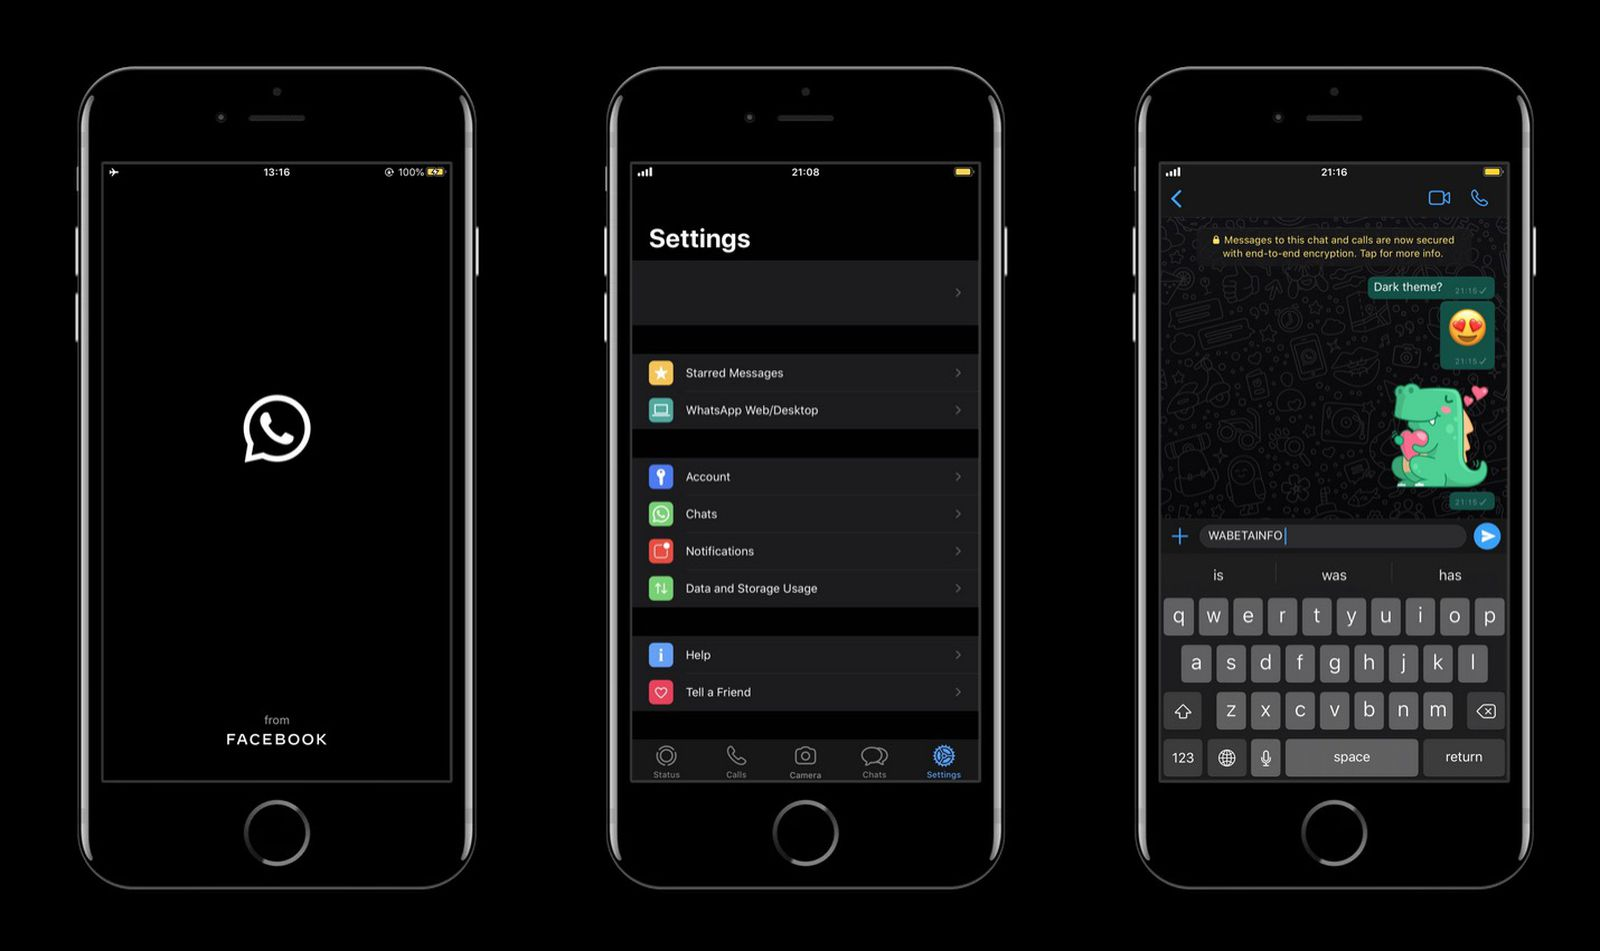 Whatsapp S Dark Mode For Iphone Inches Closer To Release Requires Ios 13 Macrumors